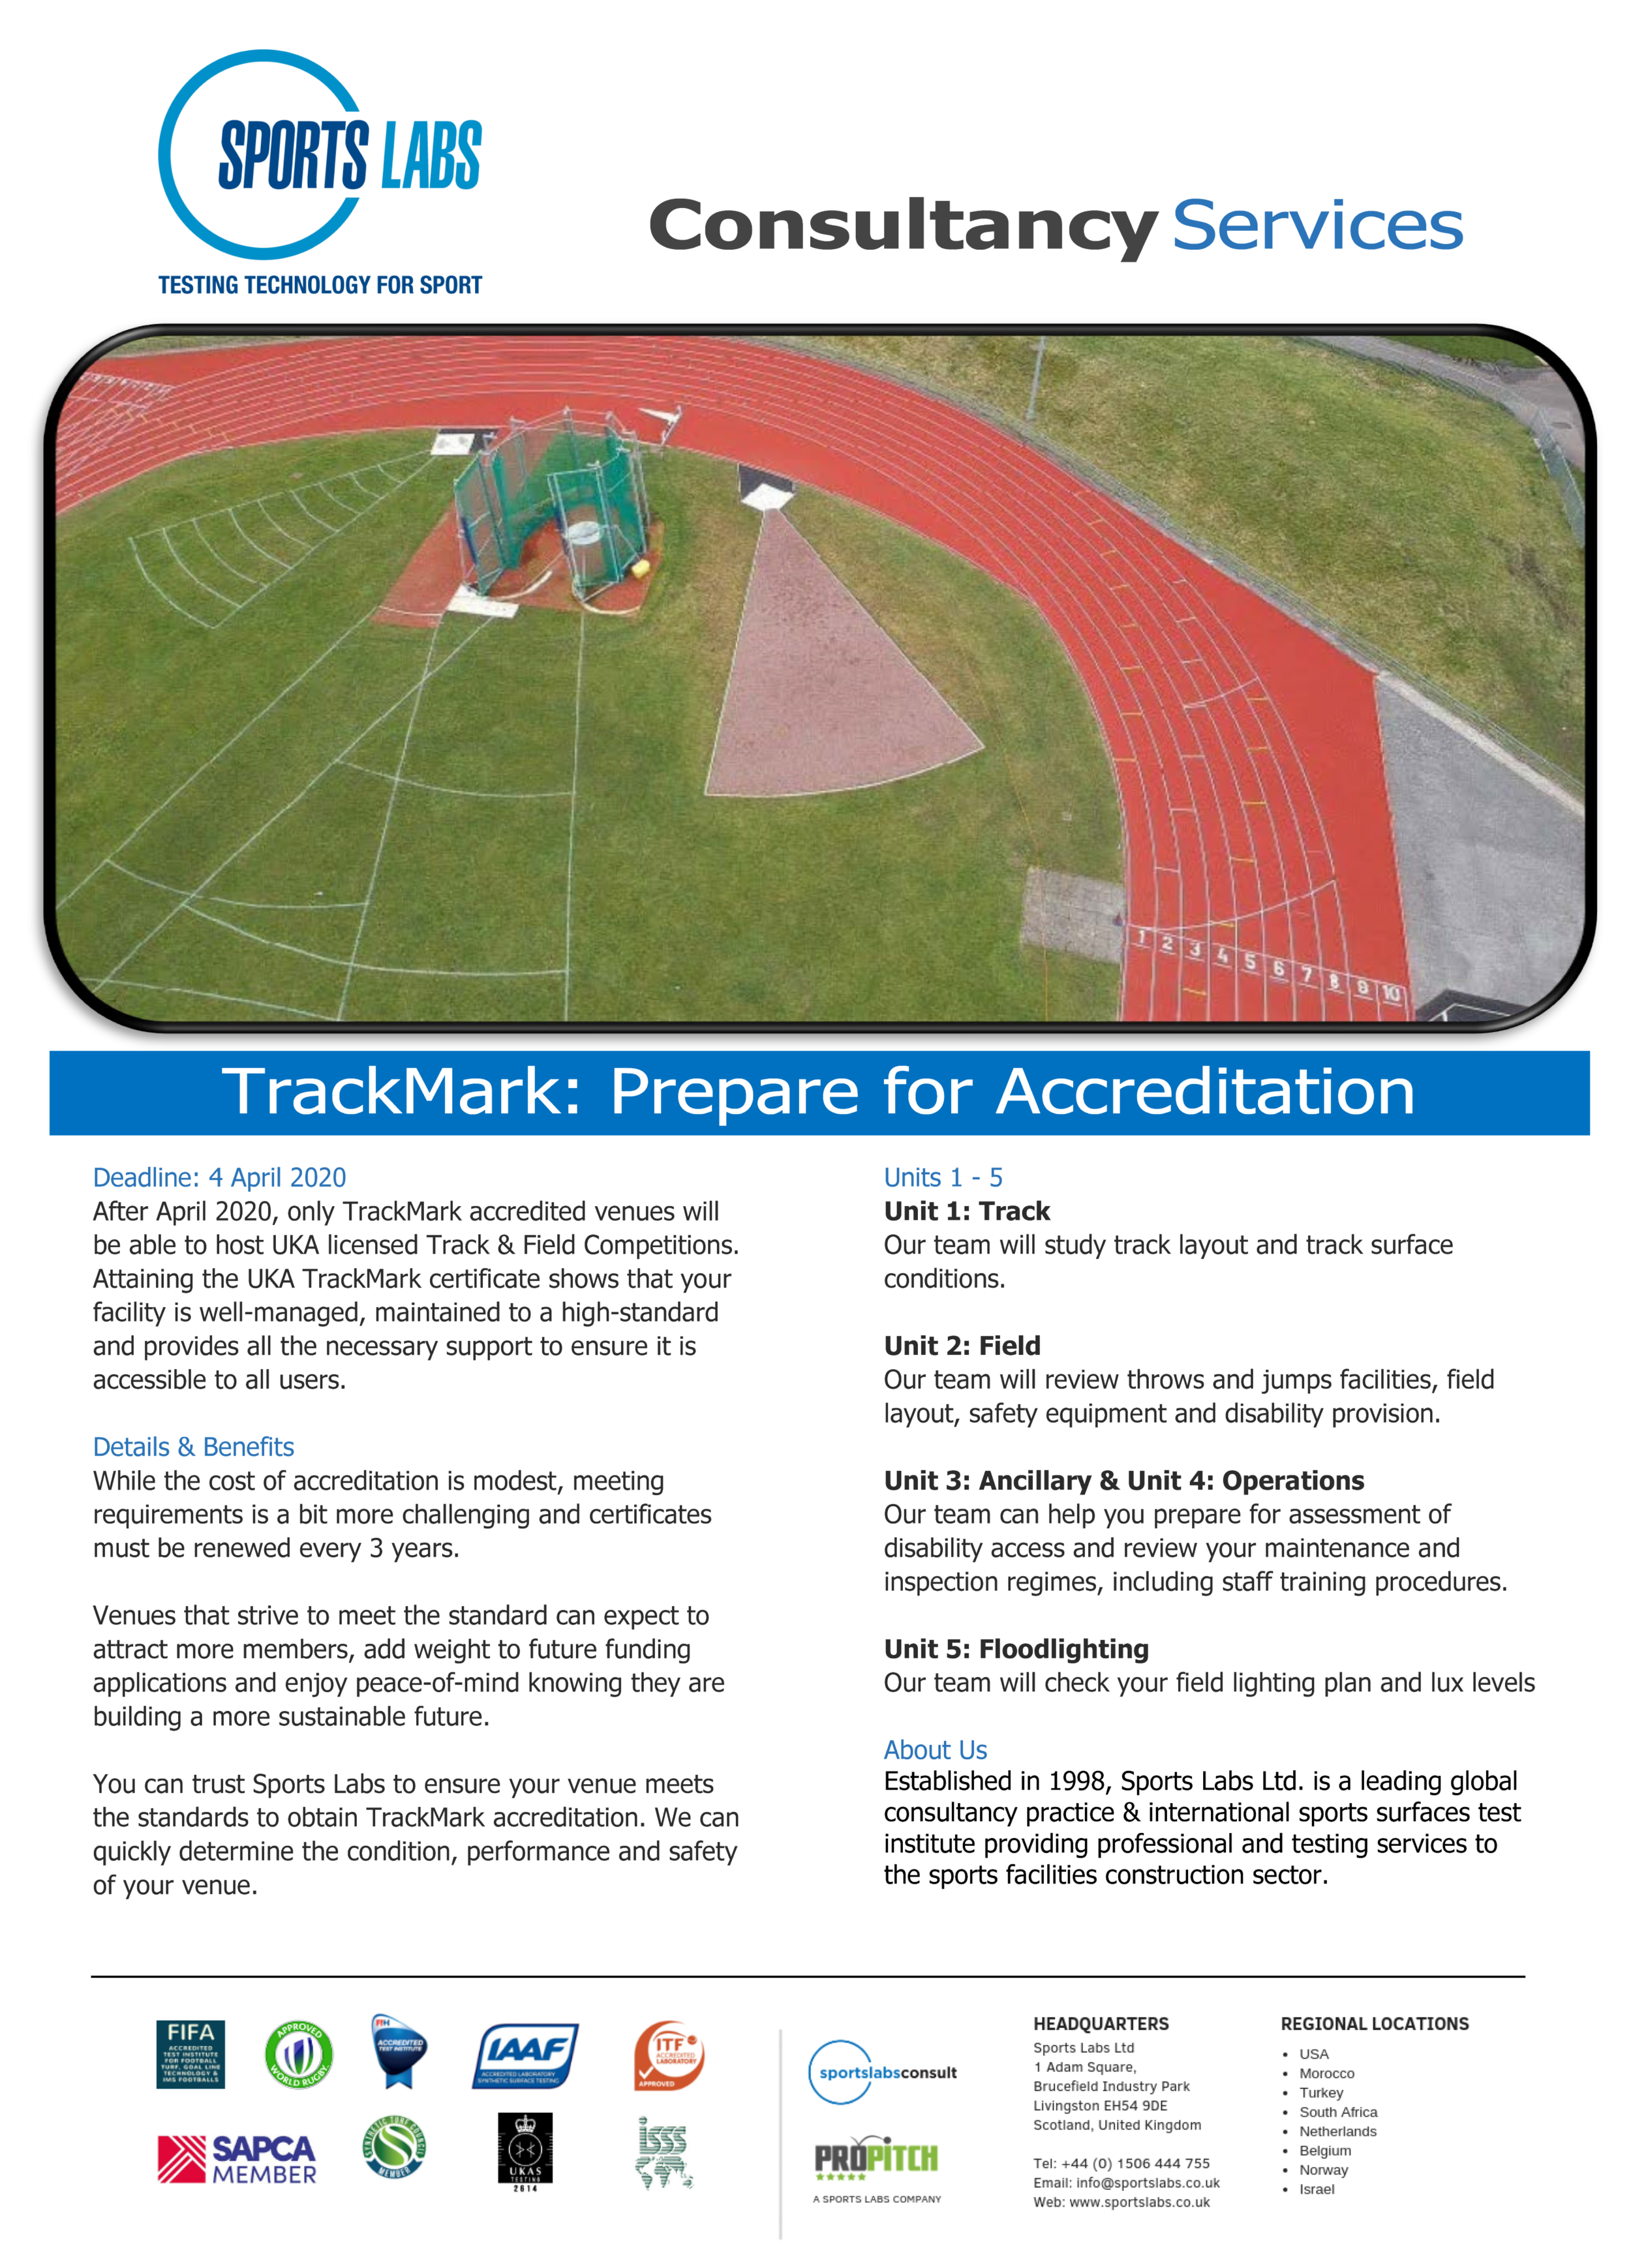 TrackMarkServices.SportsLabs.png